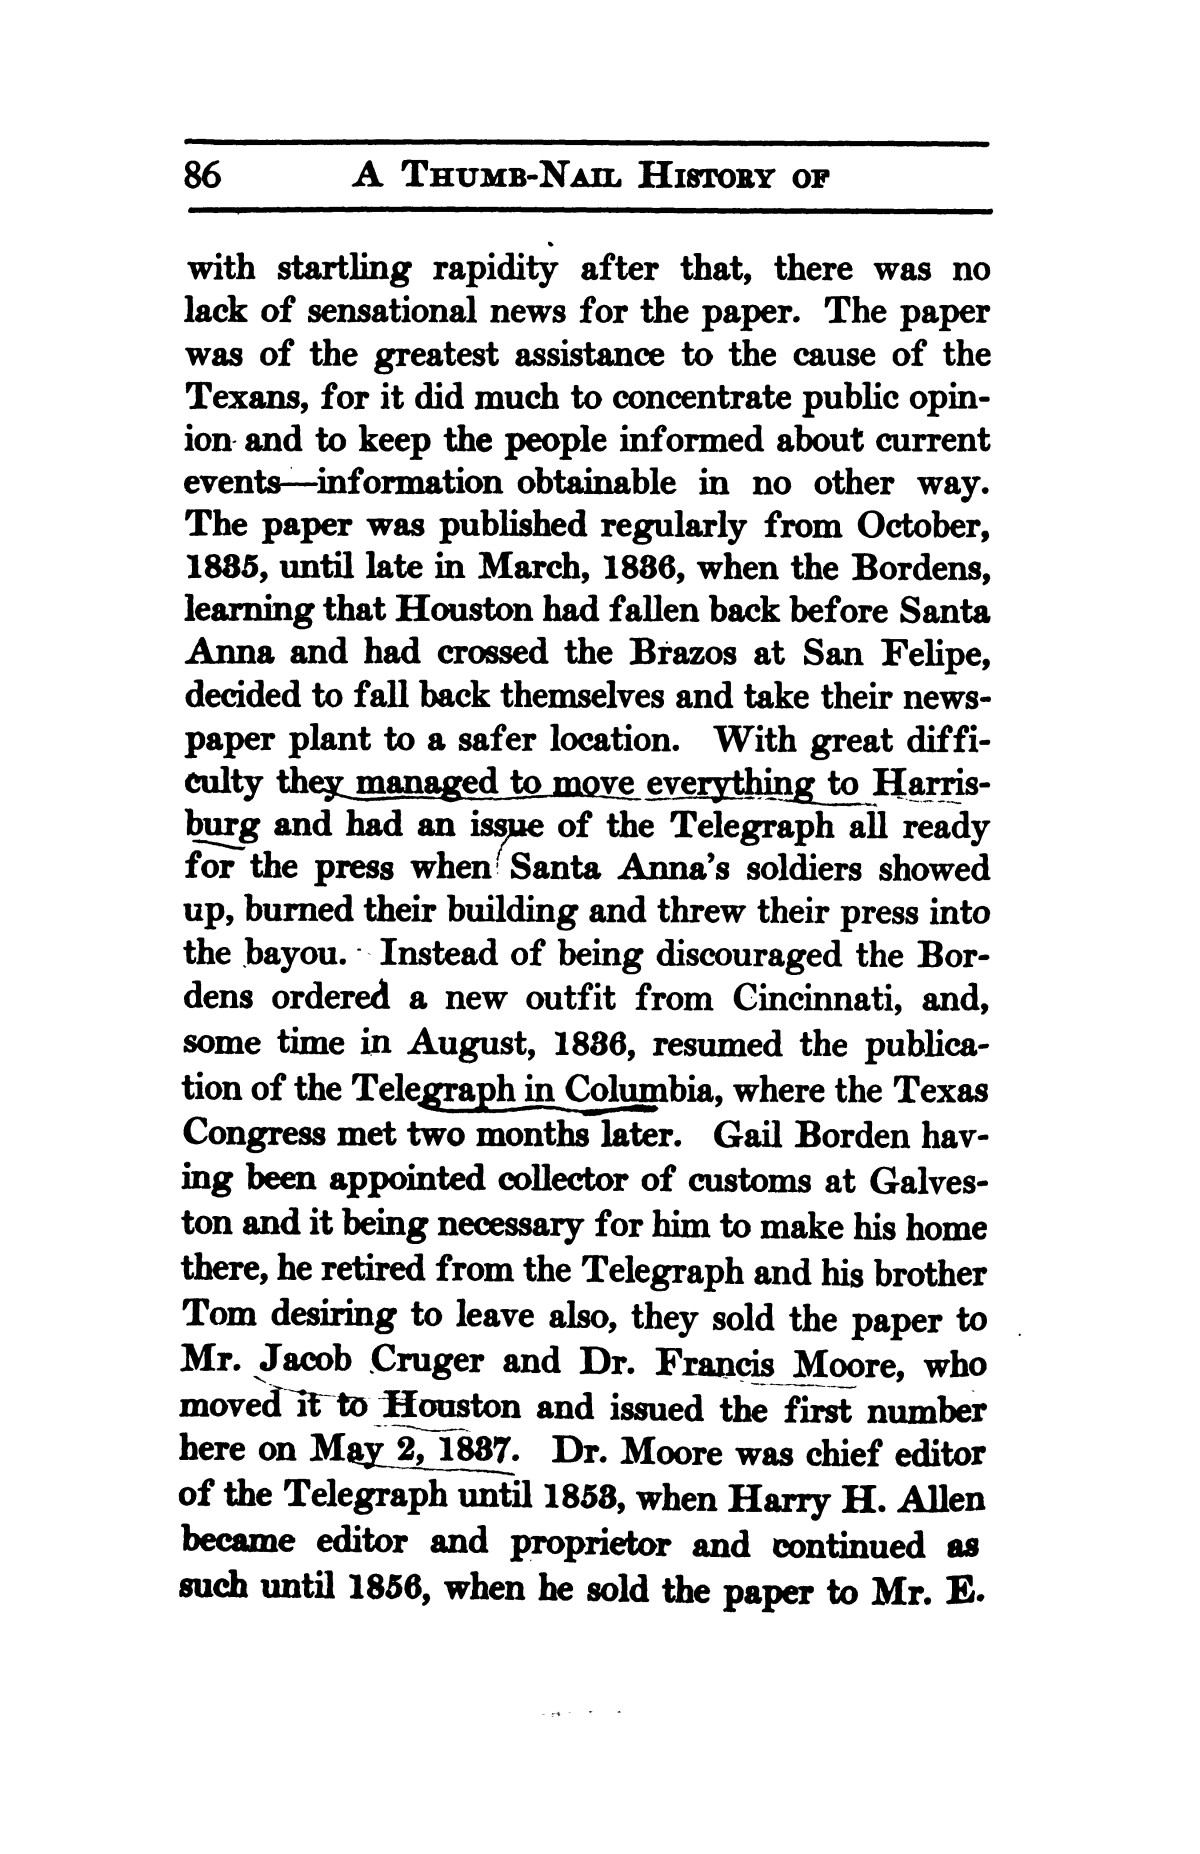 A thumb-nail history of the city of Houston, Texas, from its founding in 1836 to the year 1912                                                                                                      86